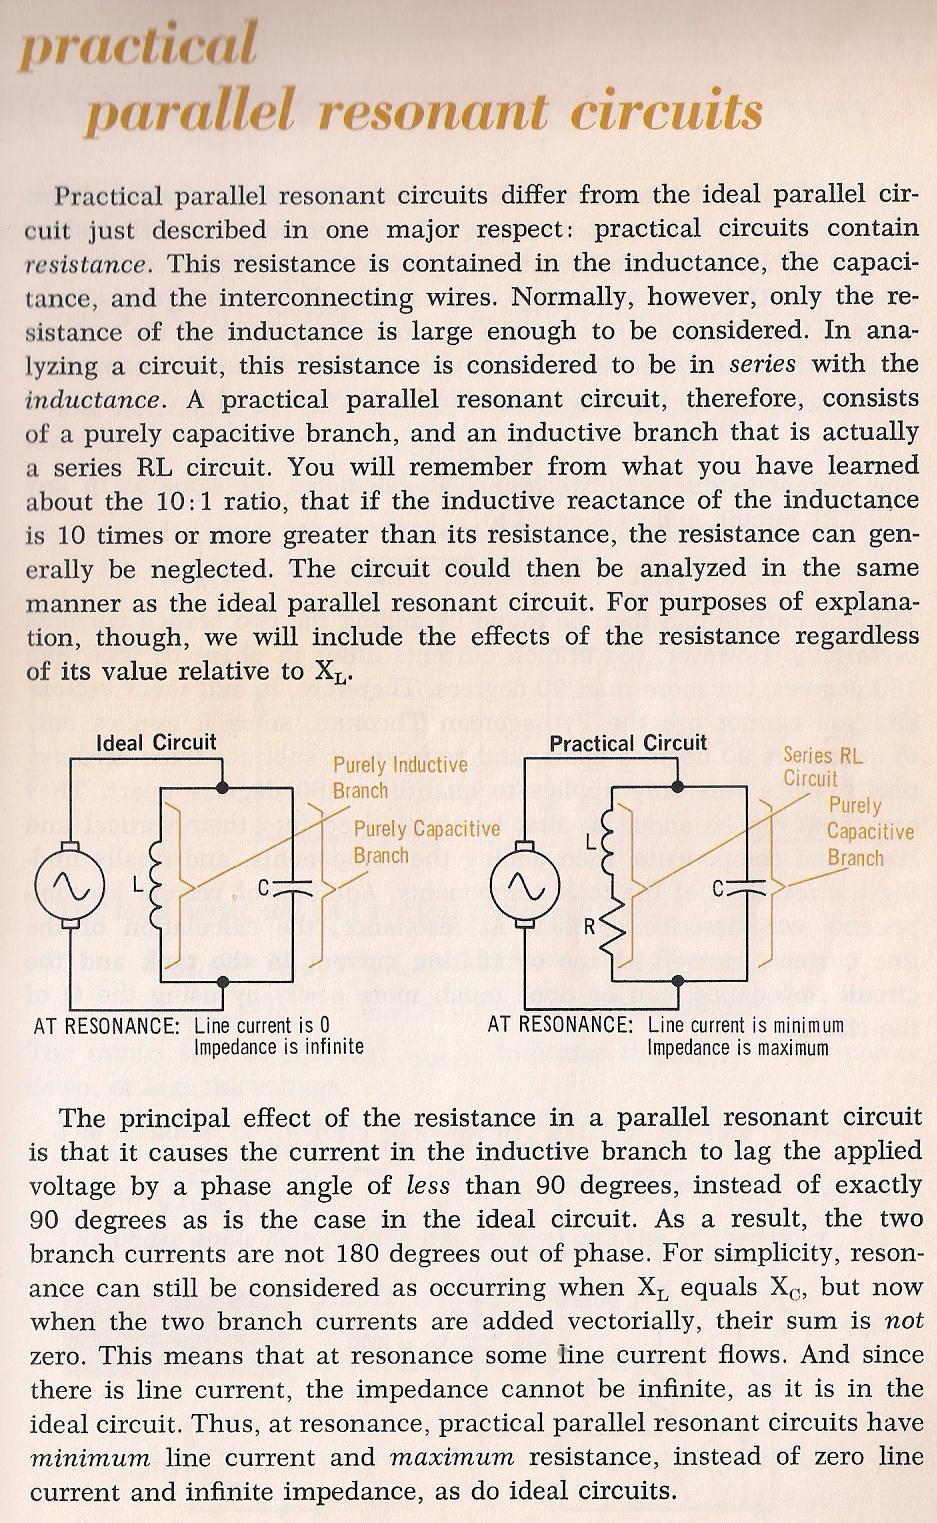 Rlc Circuits Impedance In A Parallel Resonance Circuit 078a Practical Resonant By Larry E Gugle K4rfe